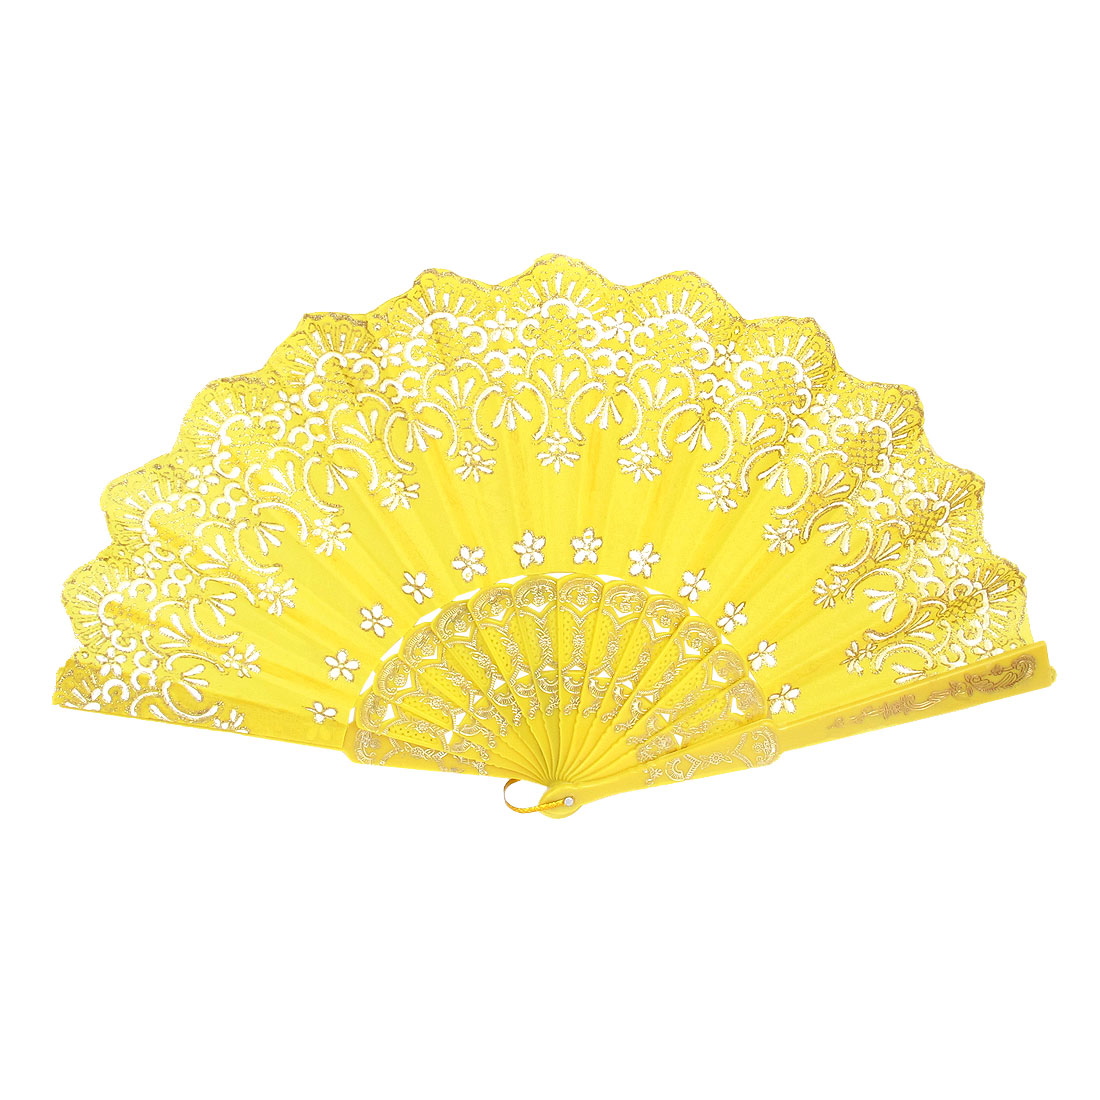 Wedding Party Gift Plastic Frame Wavy Edge Flower Printed Dancing Folding Hand Fan Yellow